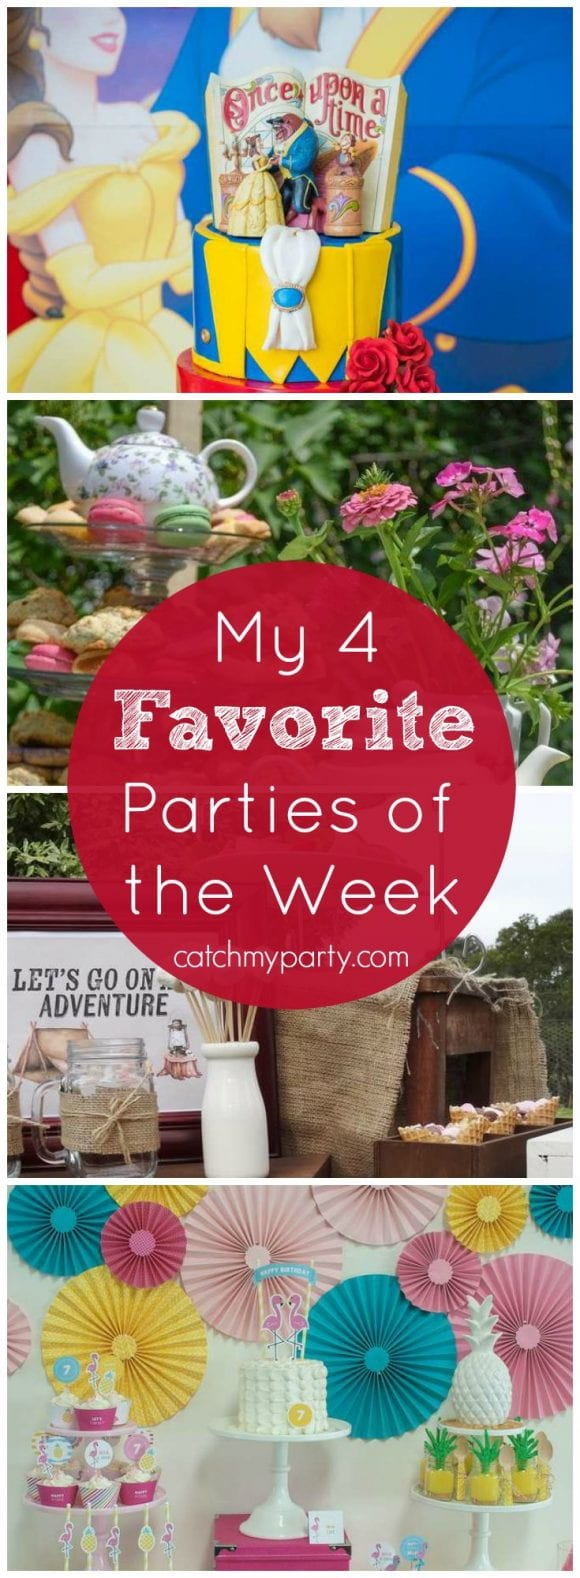 My favorite parties this week are a Beauty and the Beast party, a floral tea party, a camping party, and a flamingo party | Catchmyparty.com